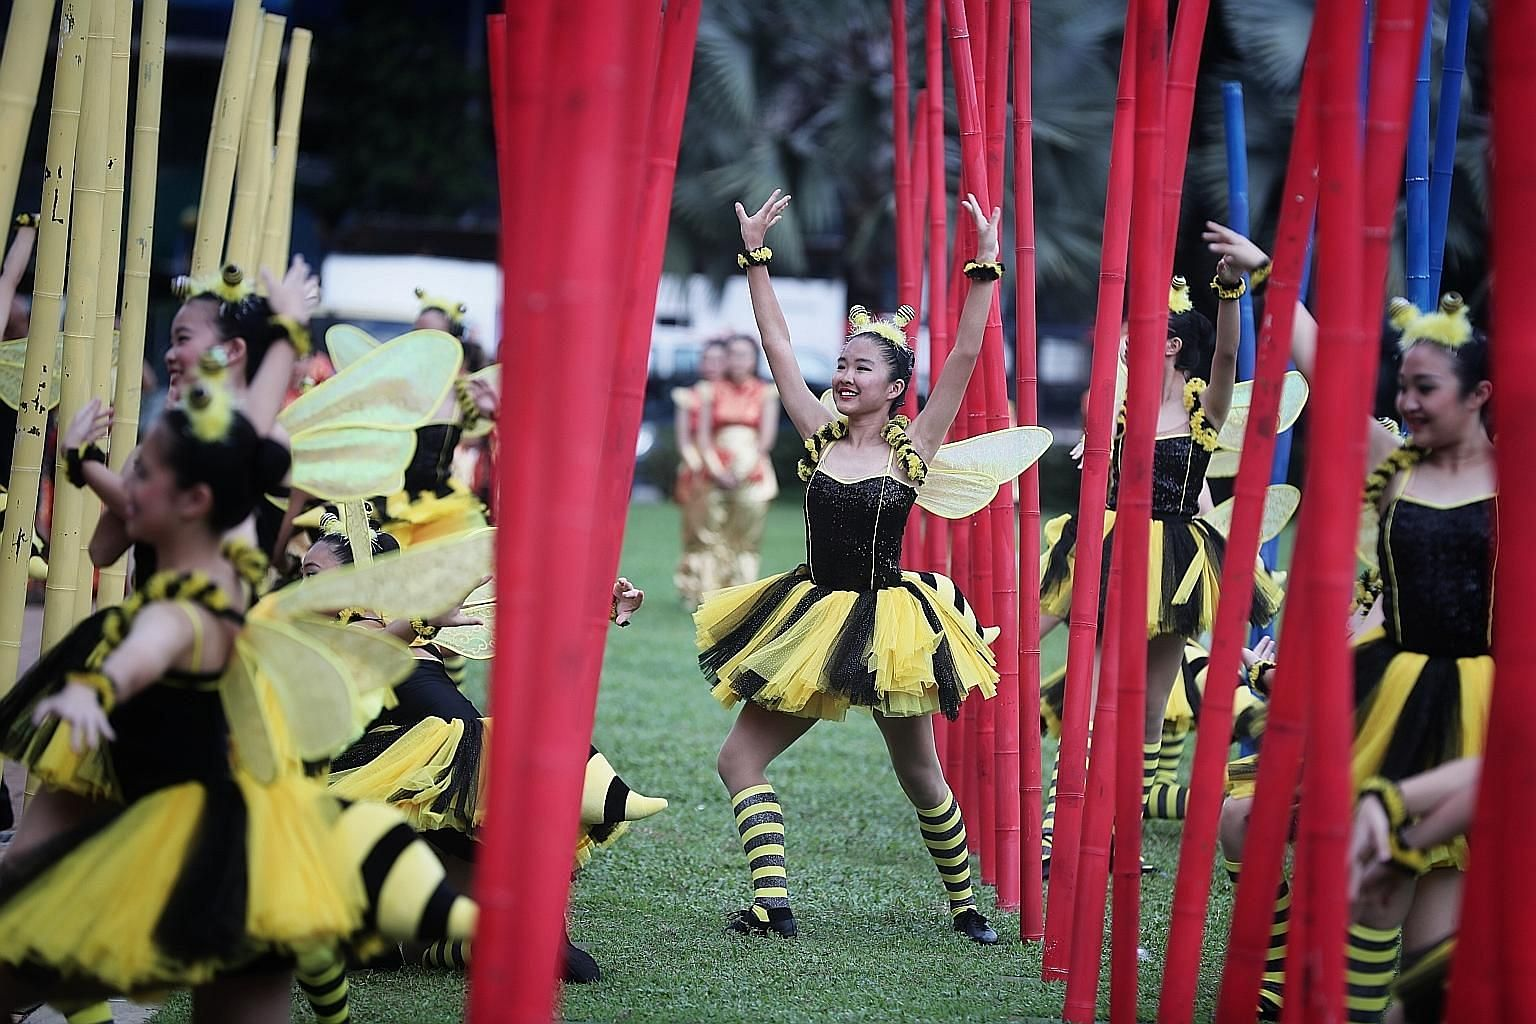 Above: Sixteen-year-old Loke Mun Len (centre), from The School of Dance, dressed as an energetic bumblebee during a performance at the Chingay 2020 media preview yesterday at the People's Association Headquarters in Jalan Besar. About 6,000 volunteer perf